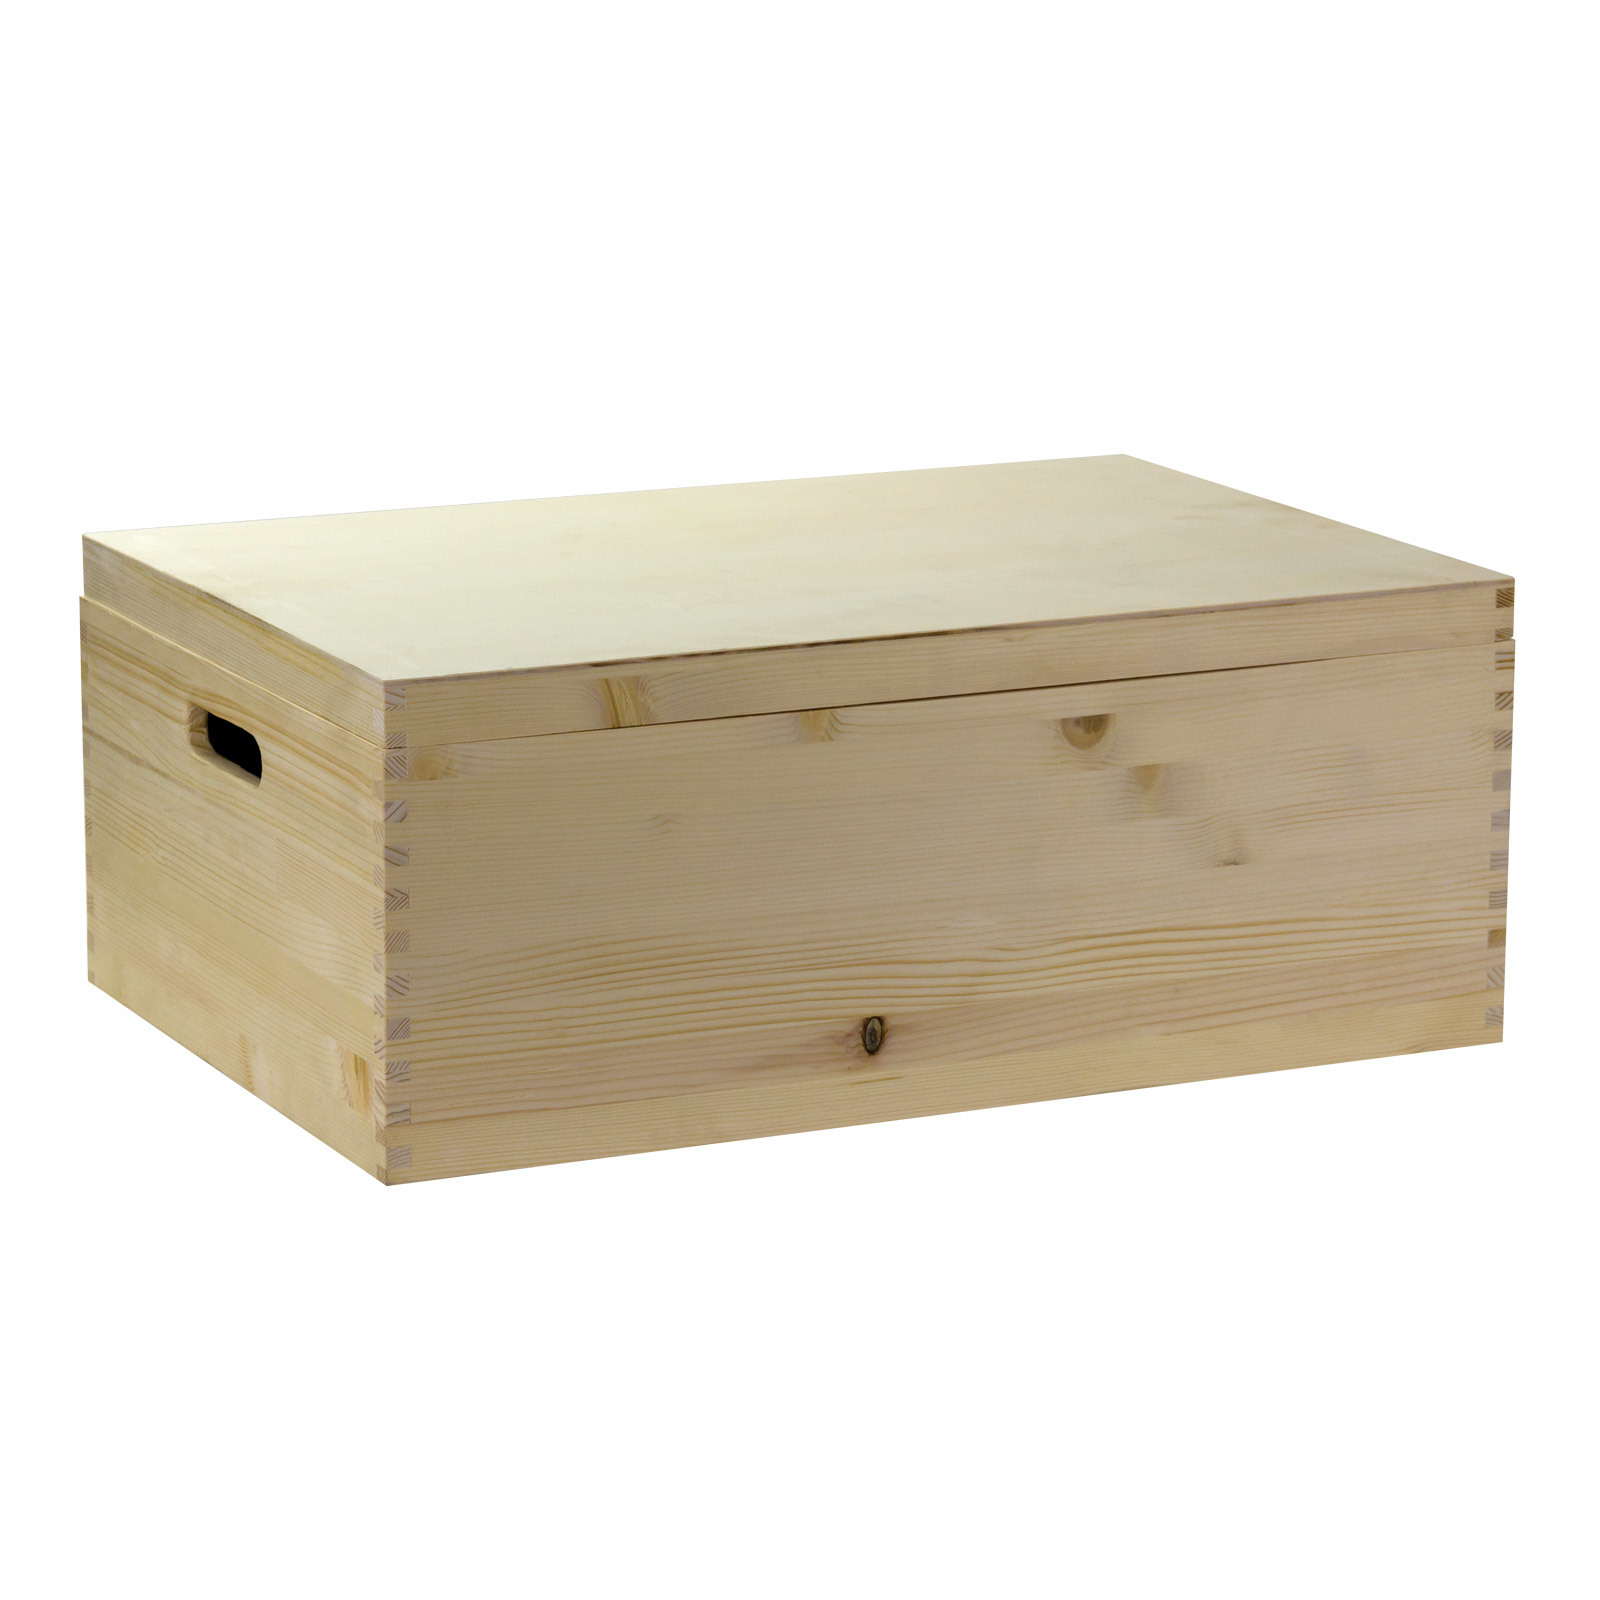 universal holz kiste box spielzeugkiste holzkiste holzbox. Black Bedroom Furniture Sets. Home Design Ideas